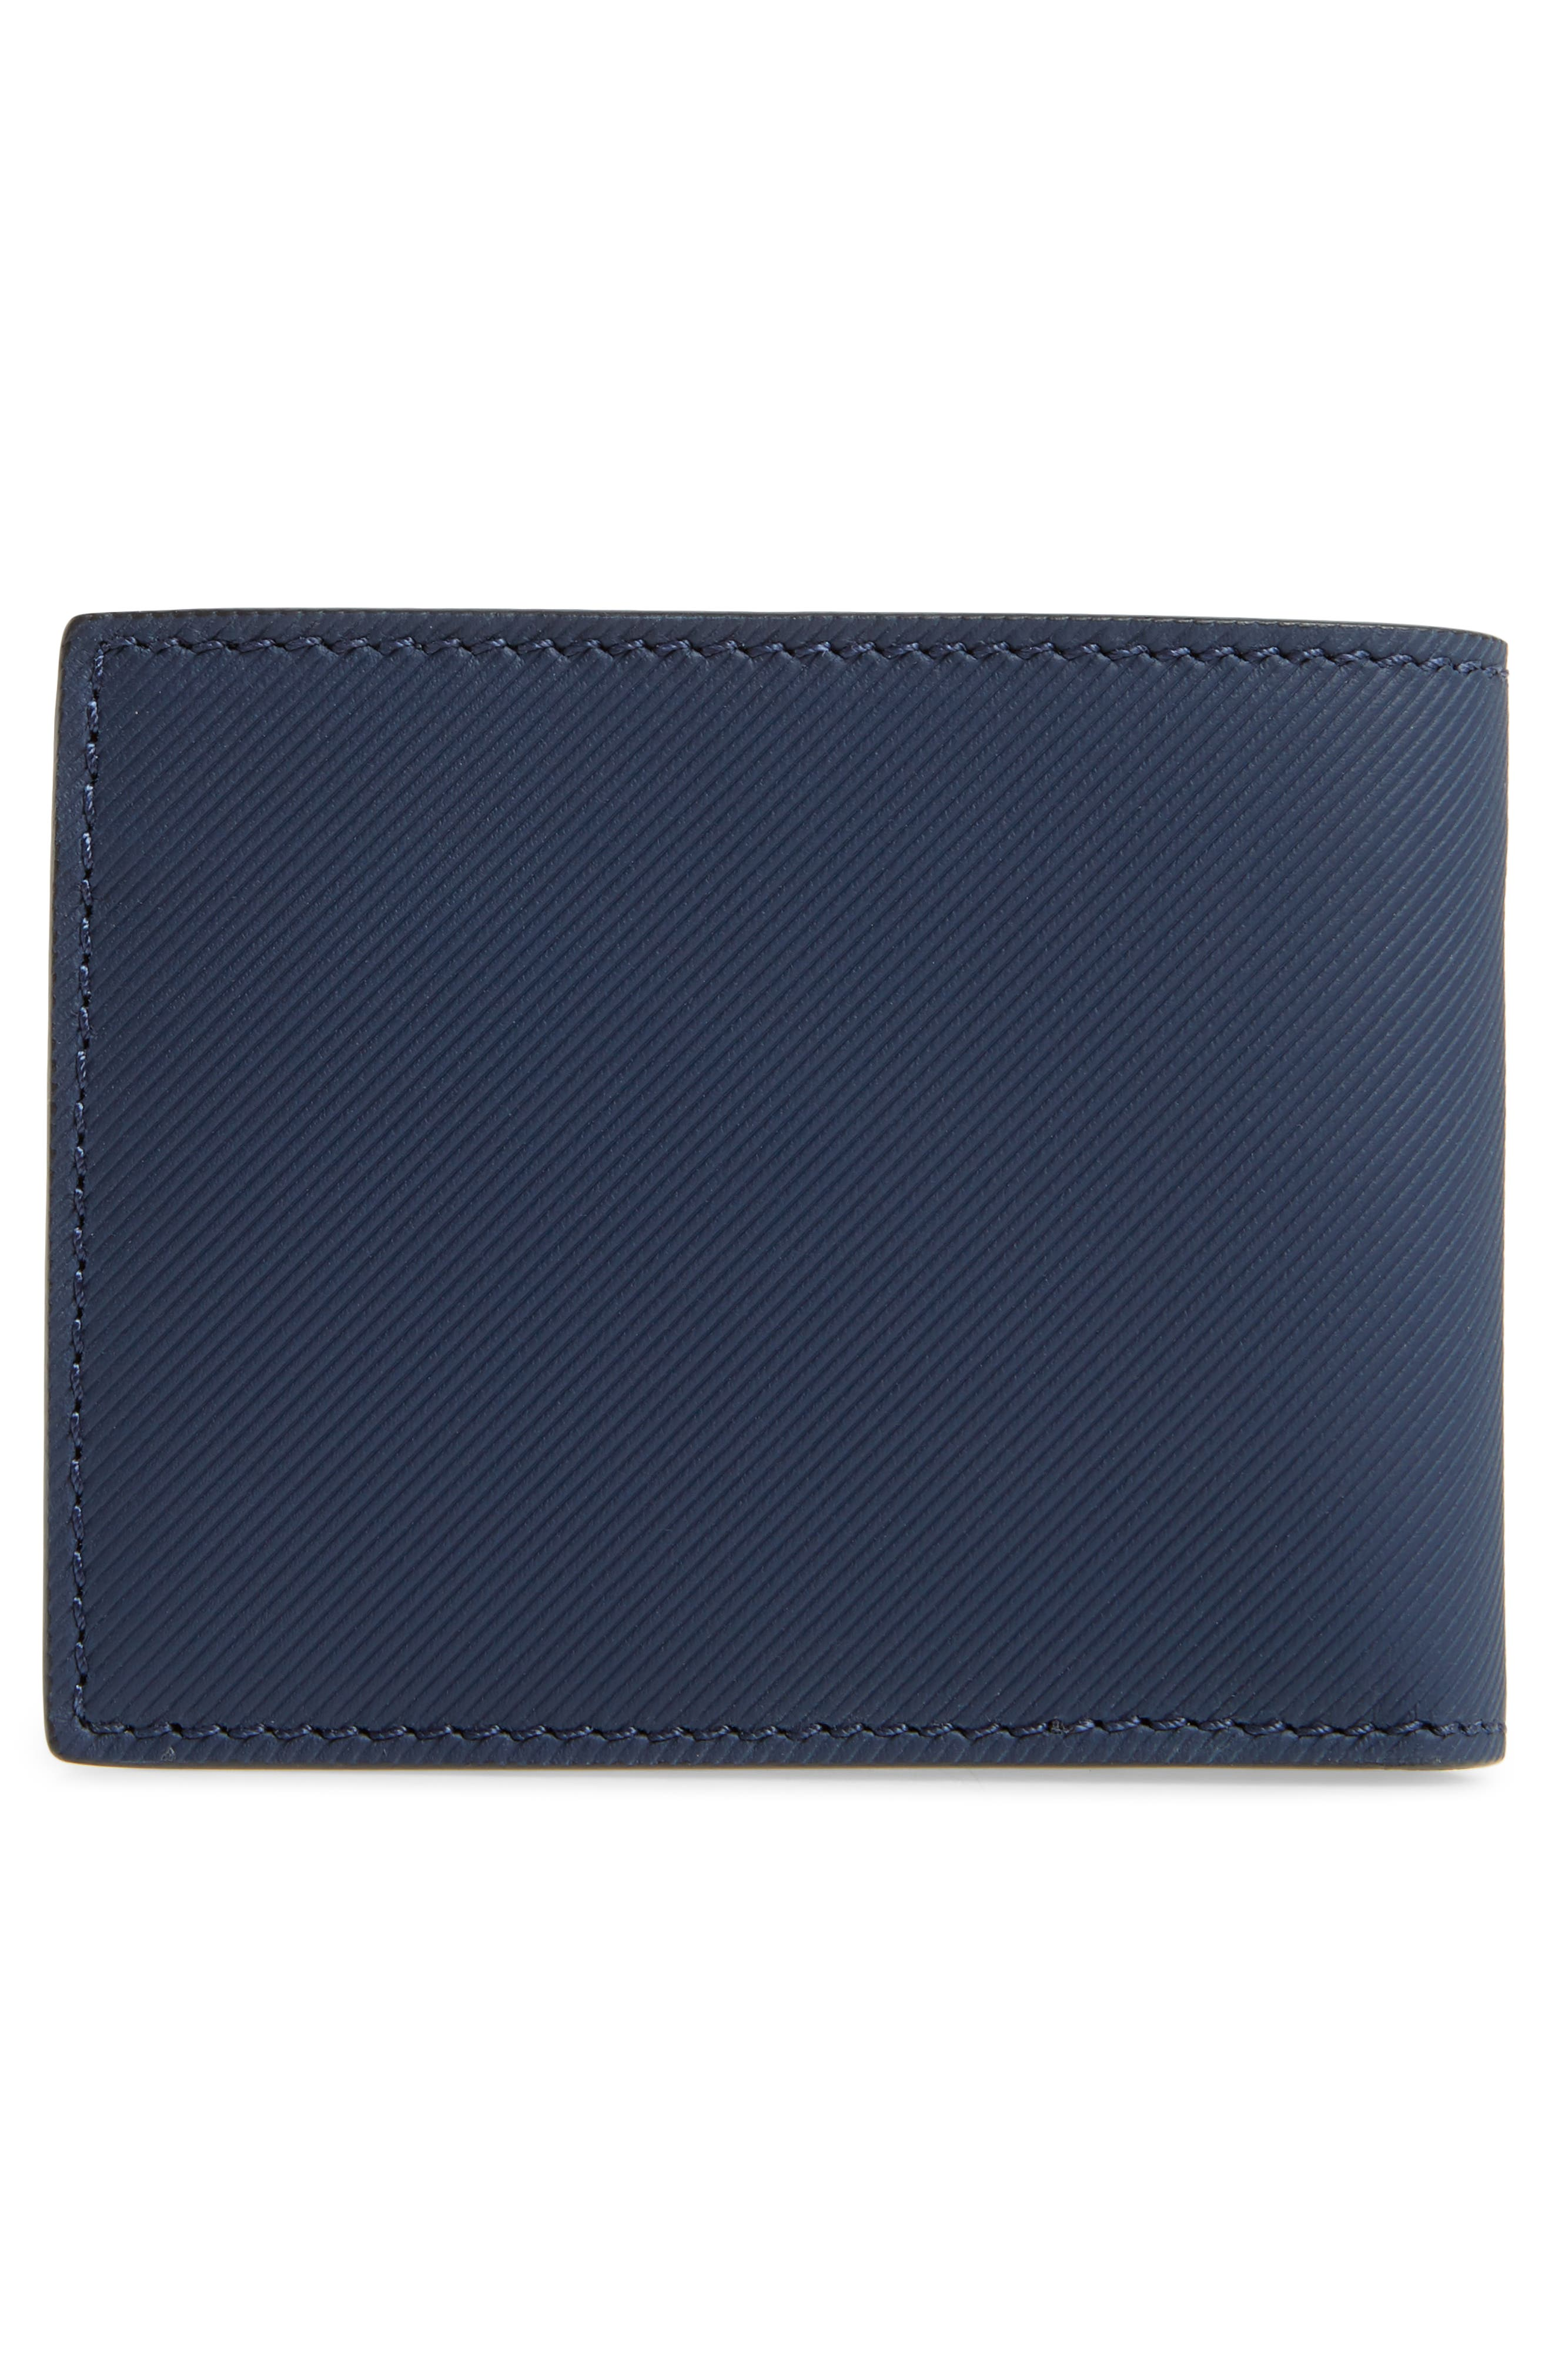 Trench Leather Wallet,                             Alternate thumbnail 3, color,